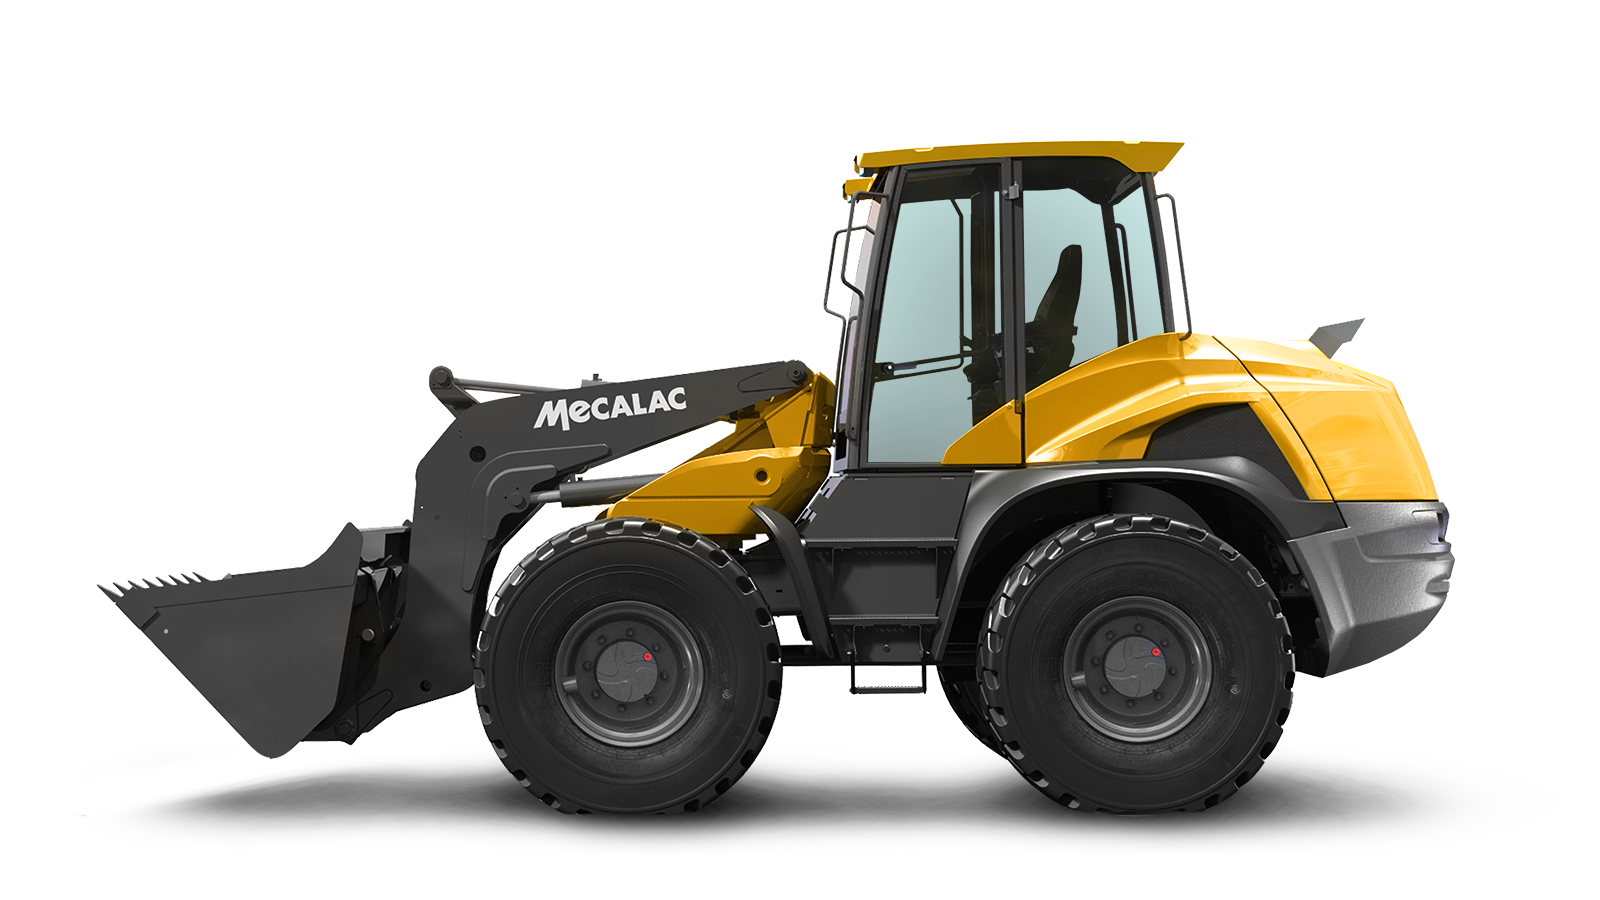 Excavator clipart crawler. Swing loaders mecalac as